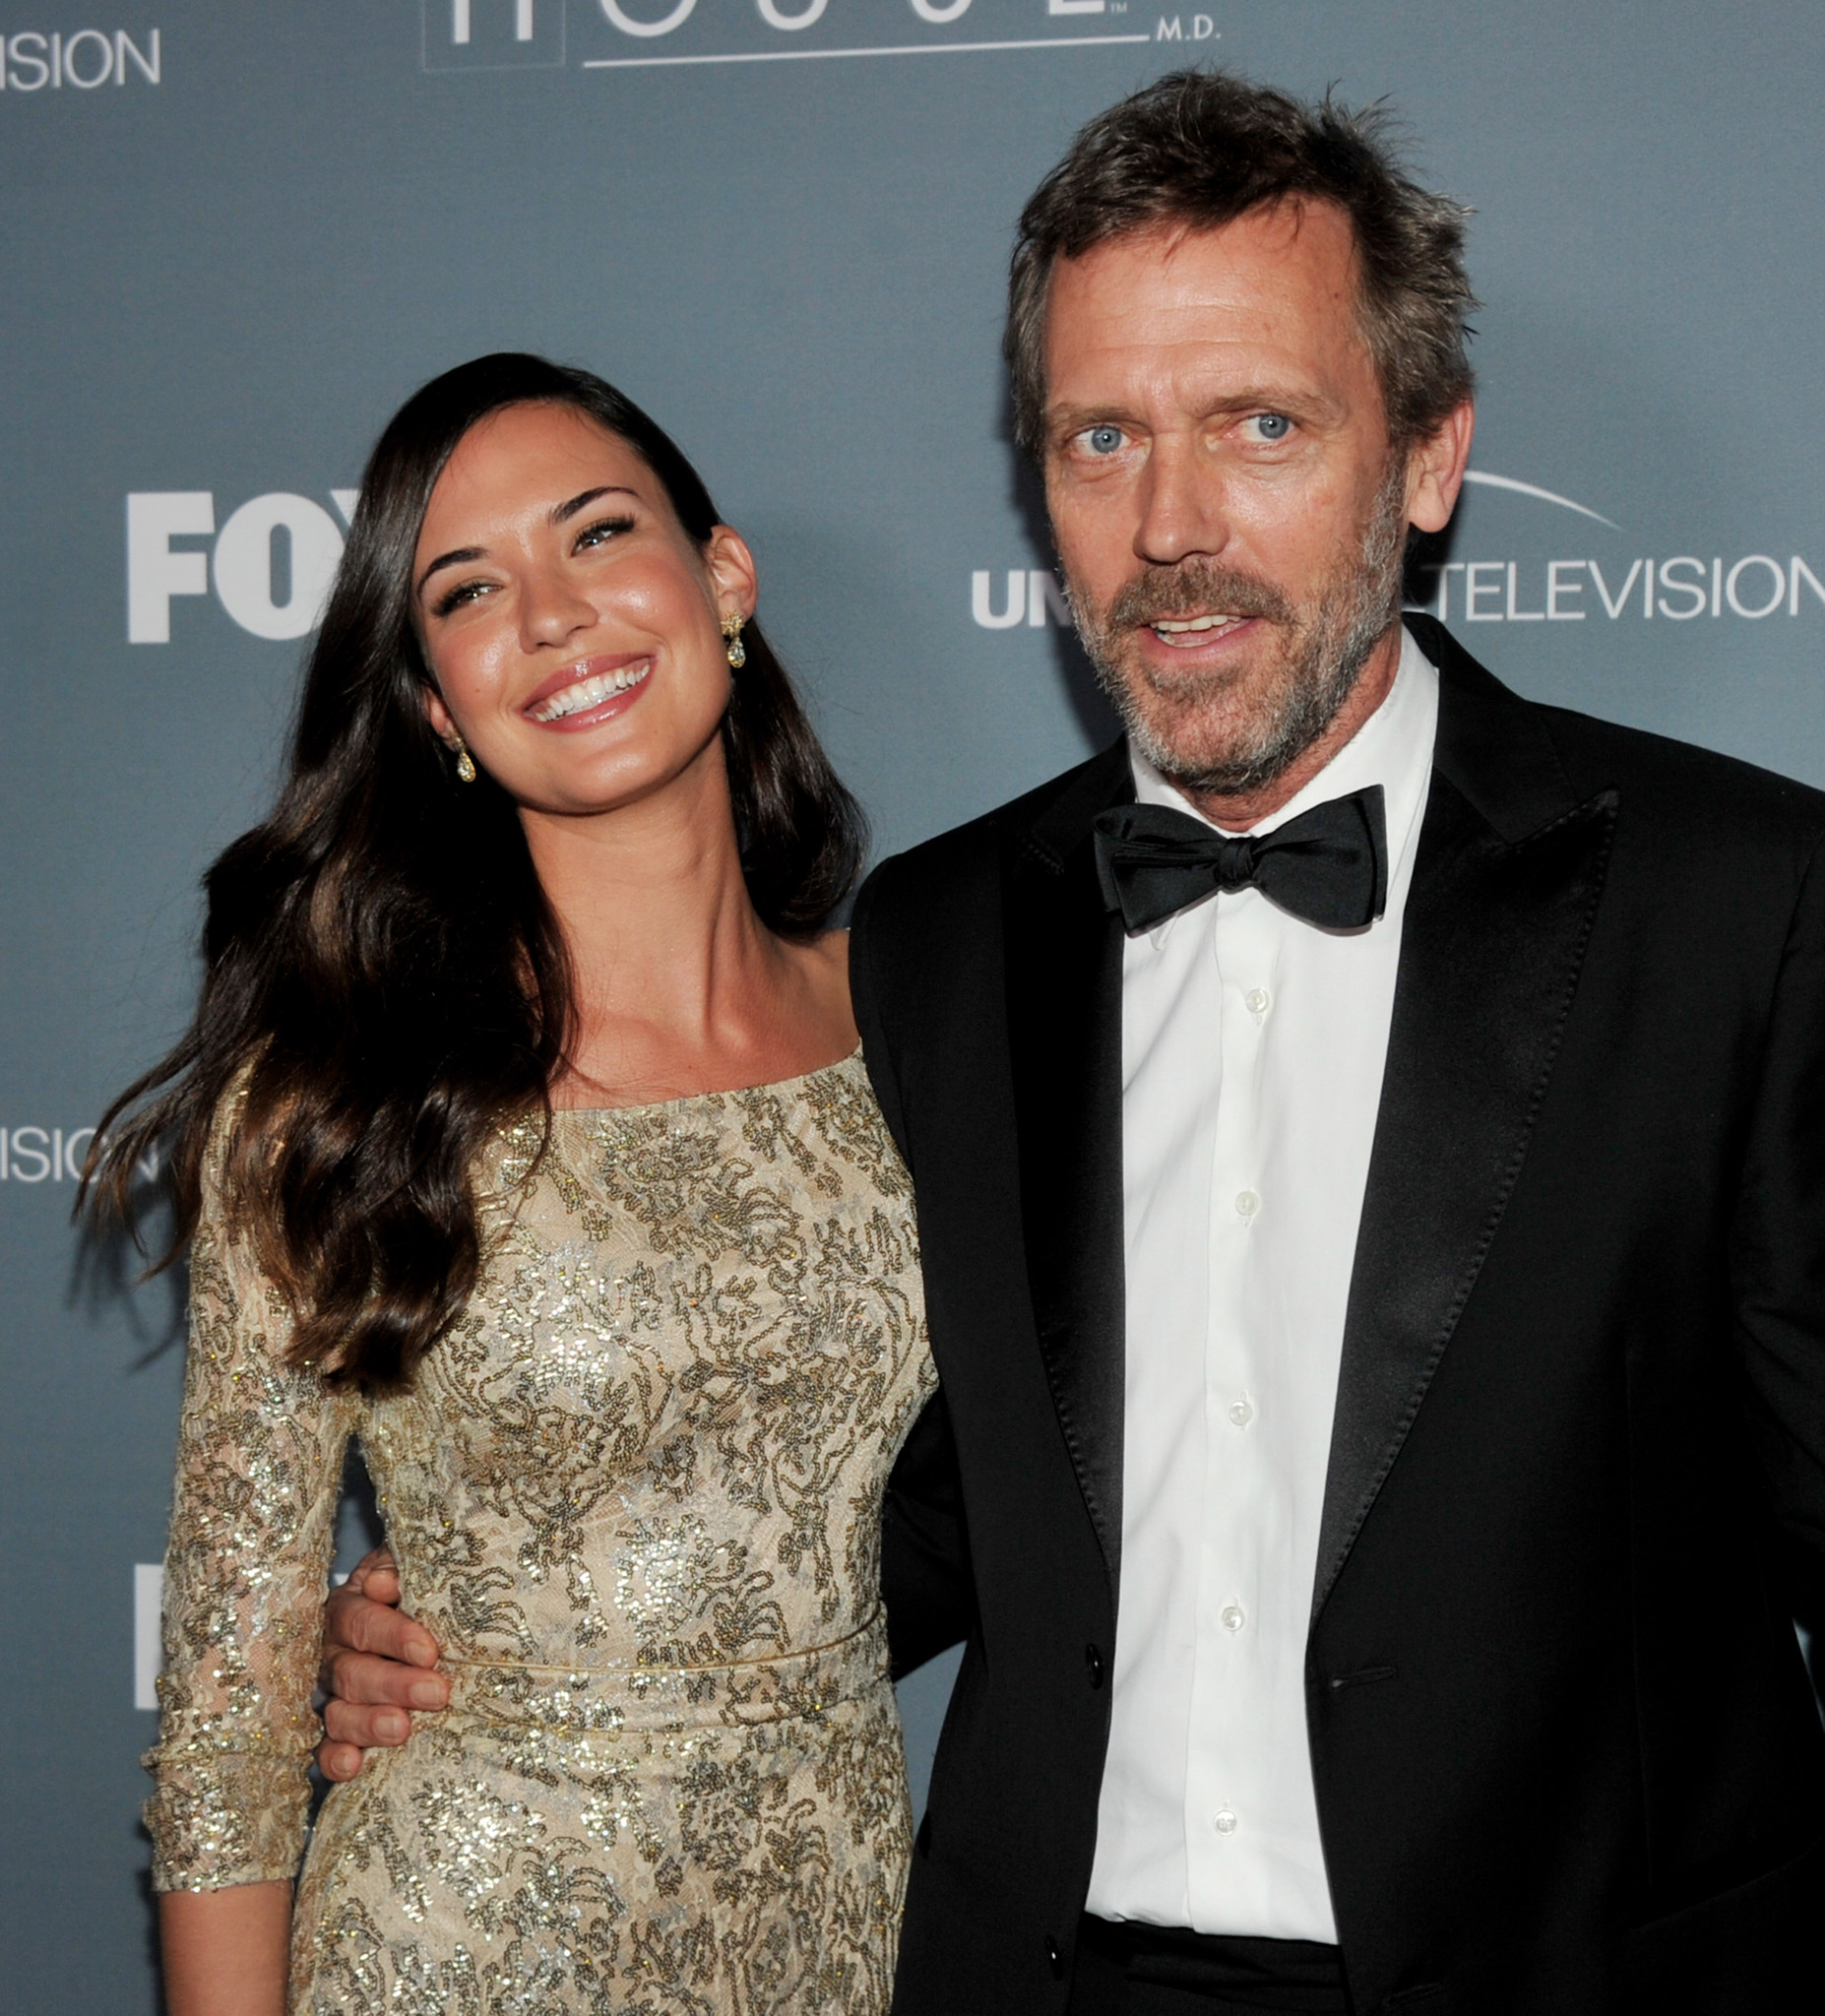 Hugh Laurie and Odette Annable at an event for House M.D. (2004)